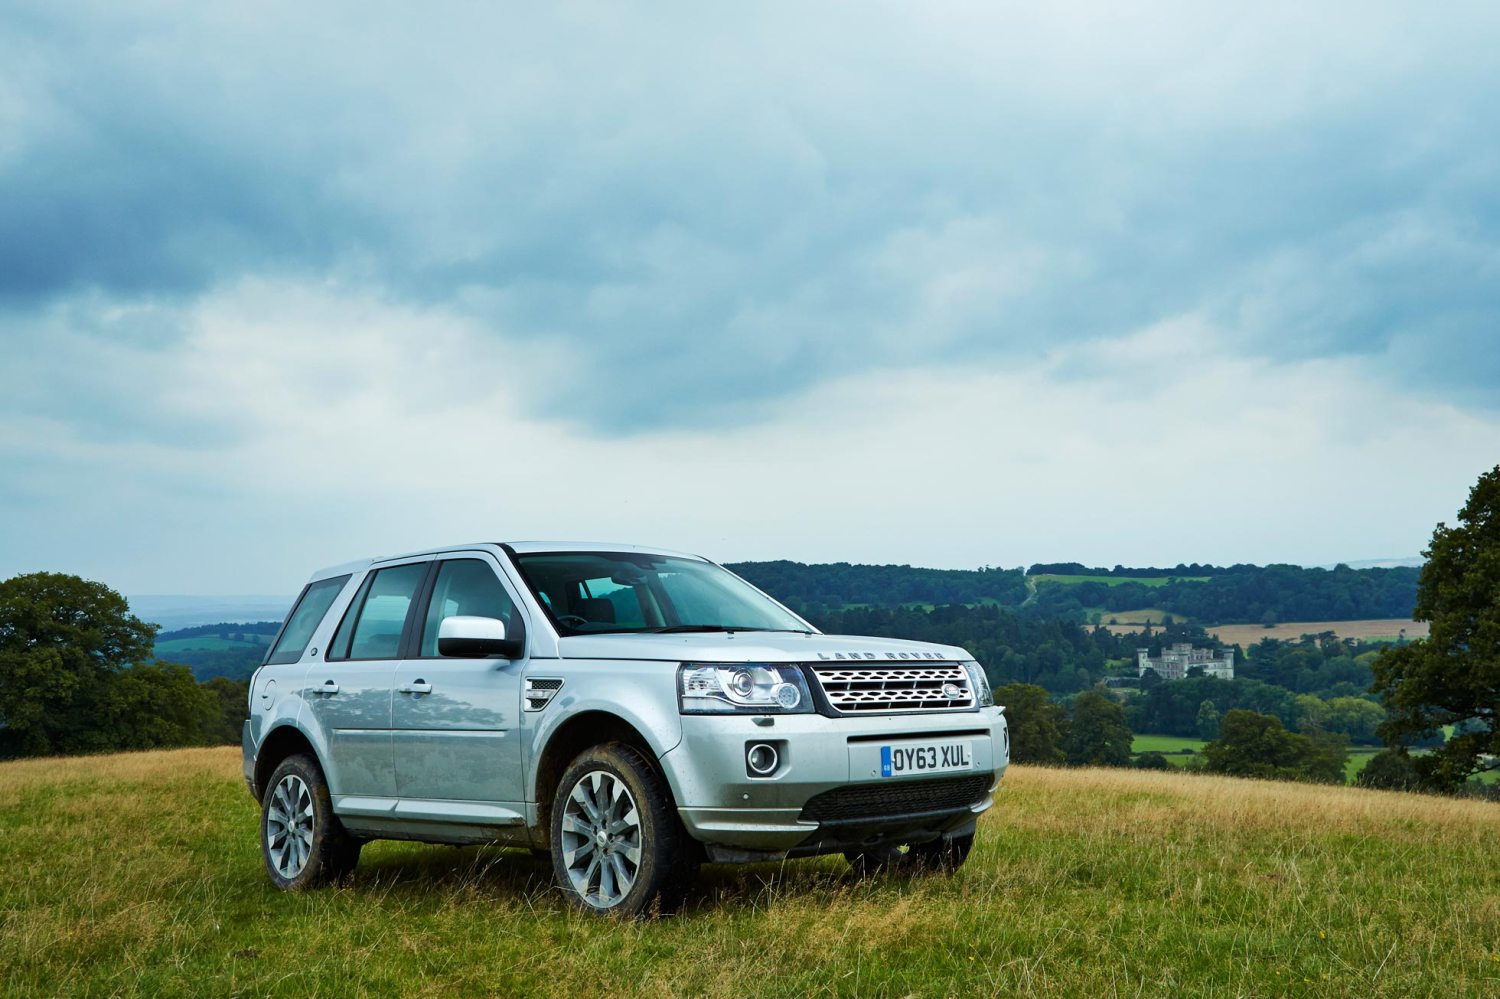 Land Rover Freelander 2 long-termer